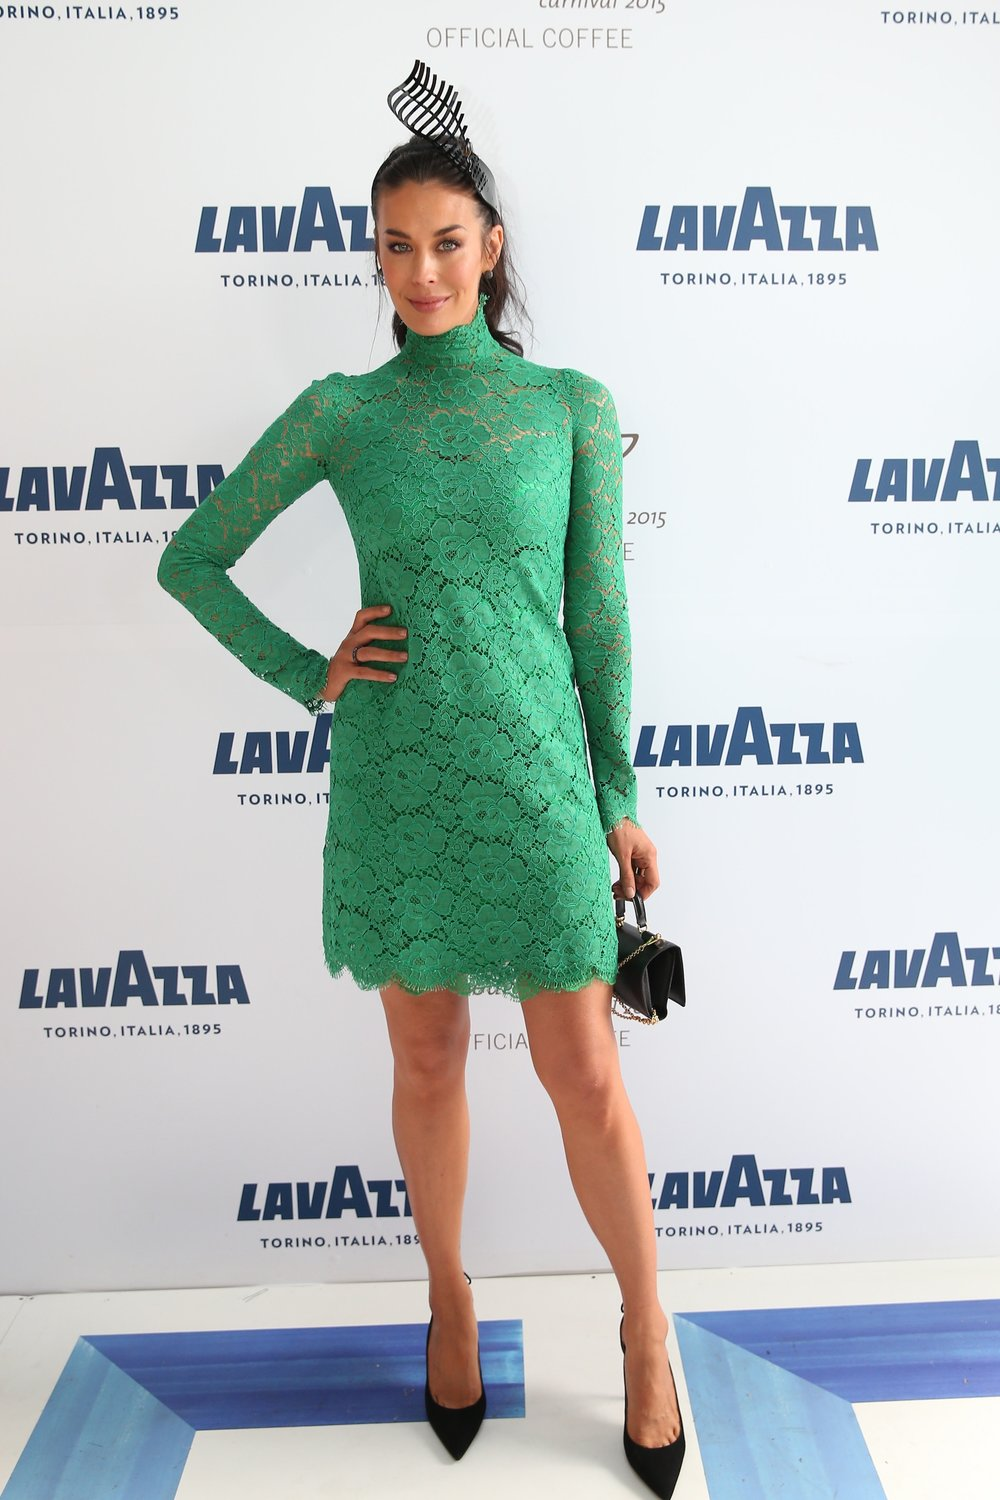 lavazza-mcc-2015-megan-gale.jpg